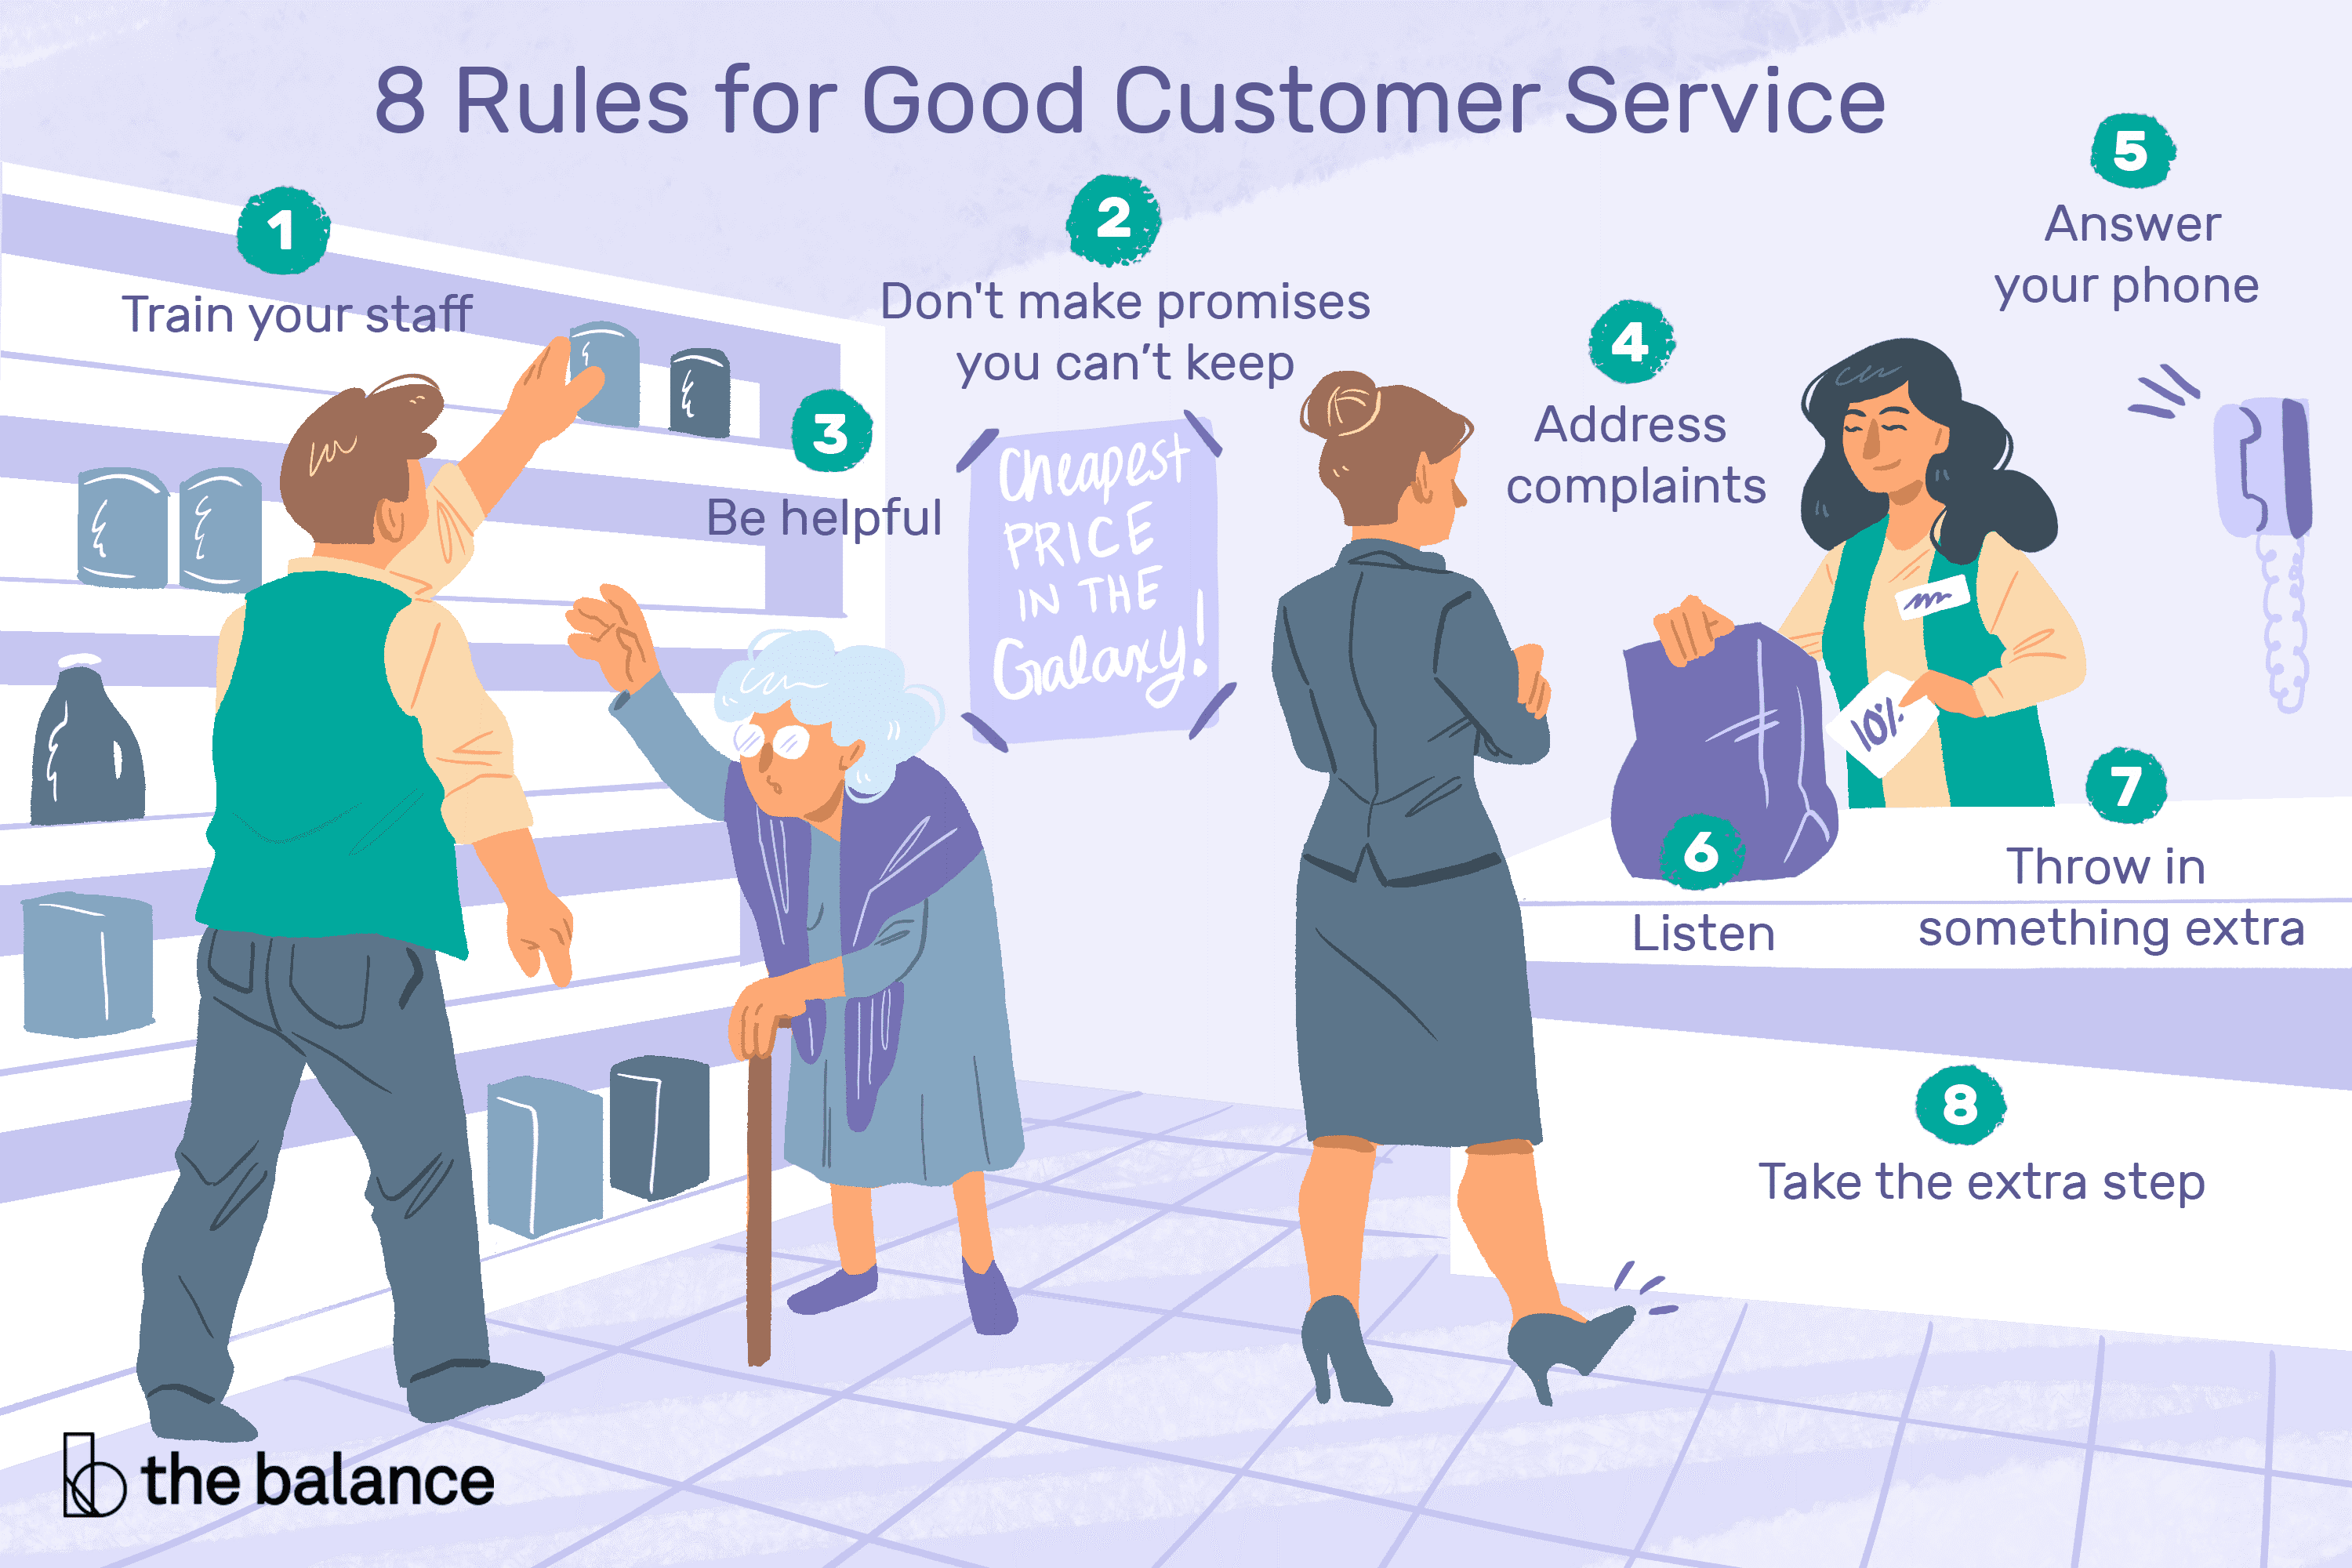 Customer Service is important for services